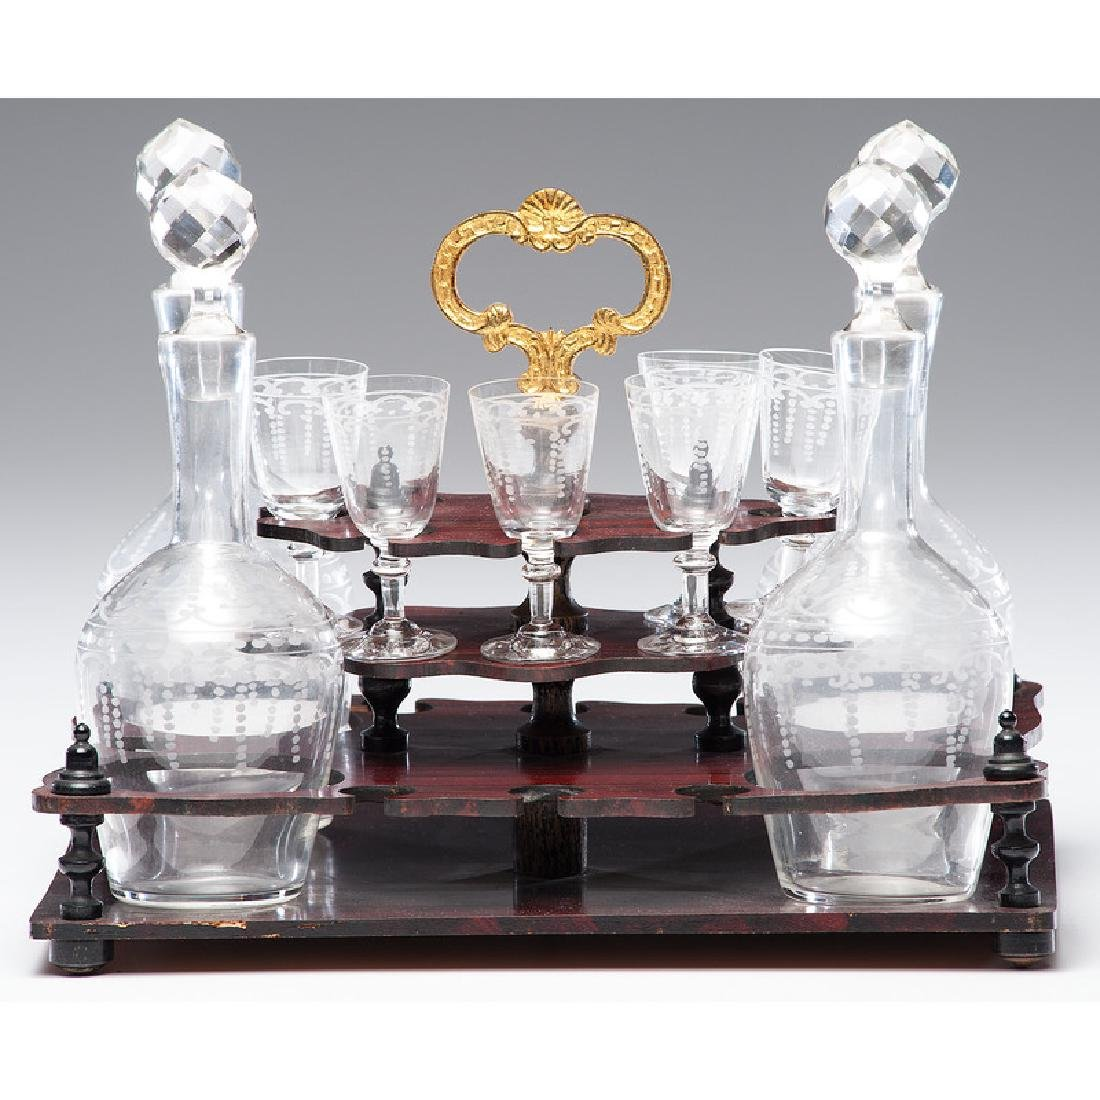 Napoleon III Boulle Tantalus with Etched Glass - 3